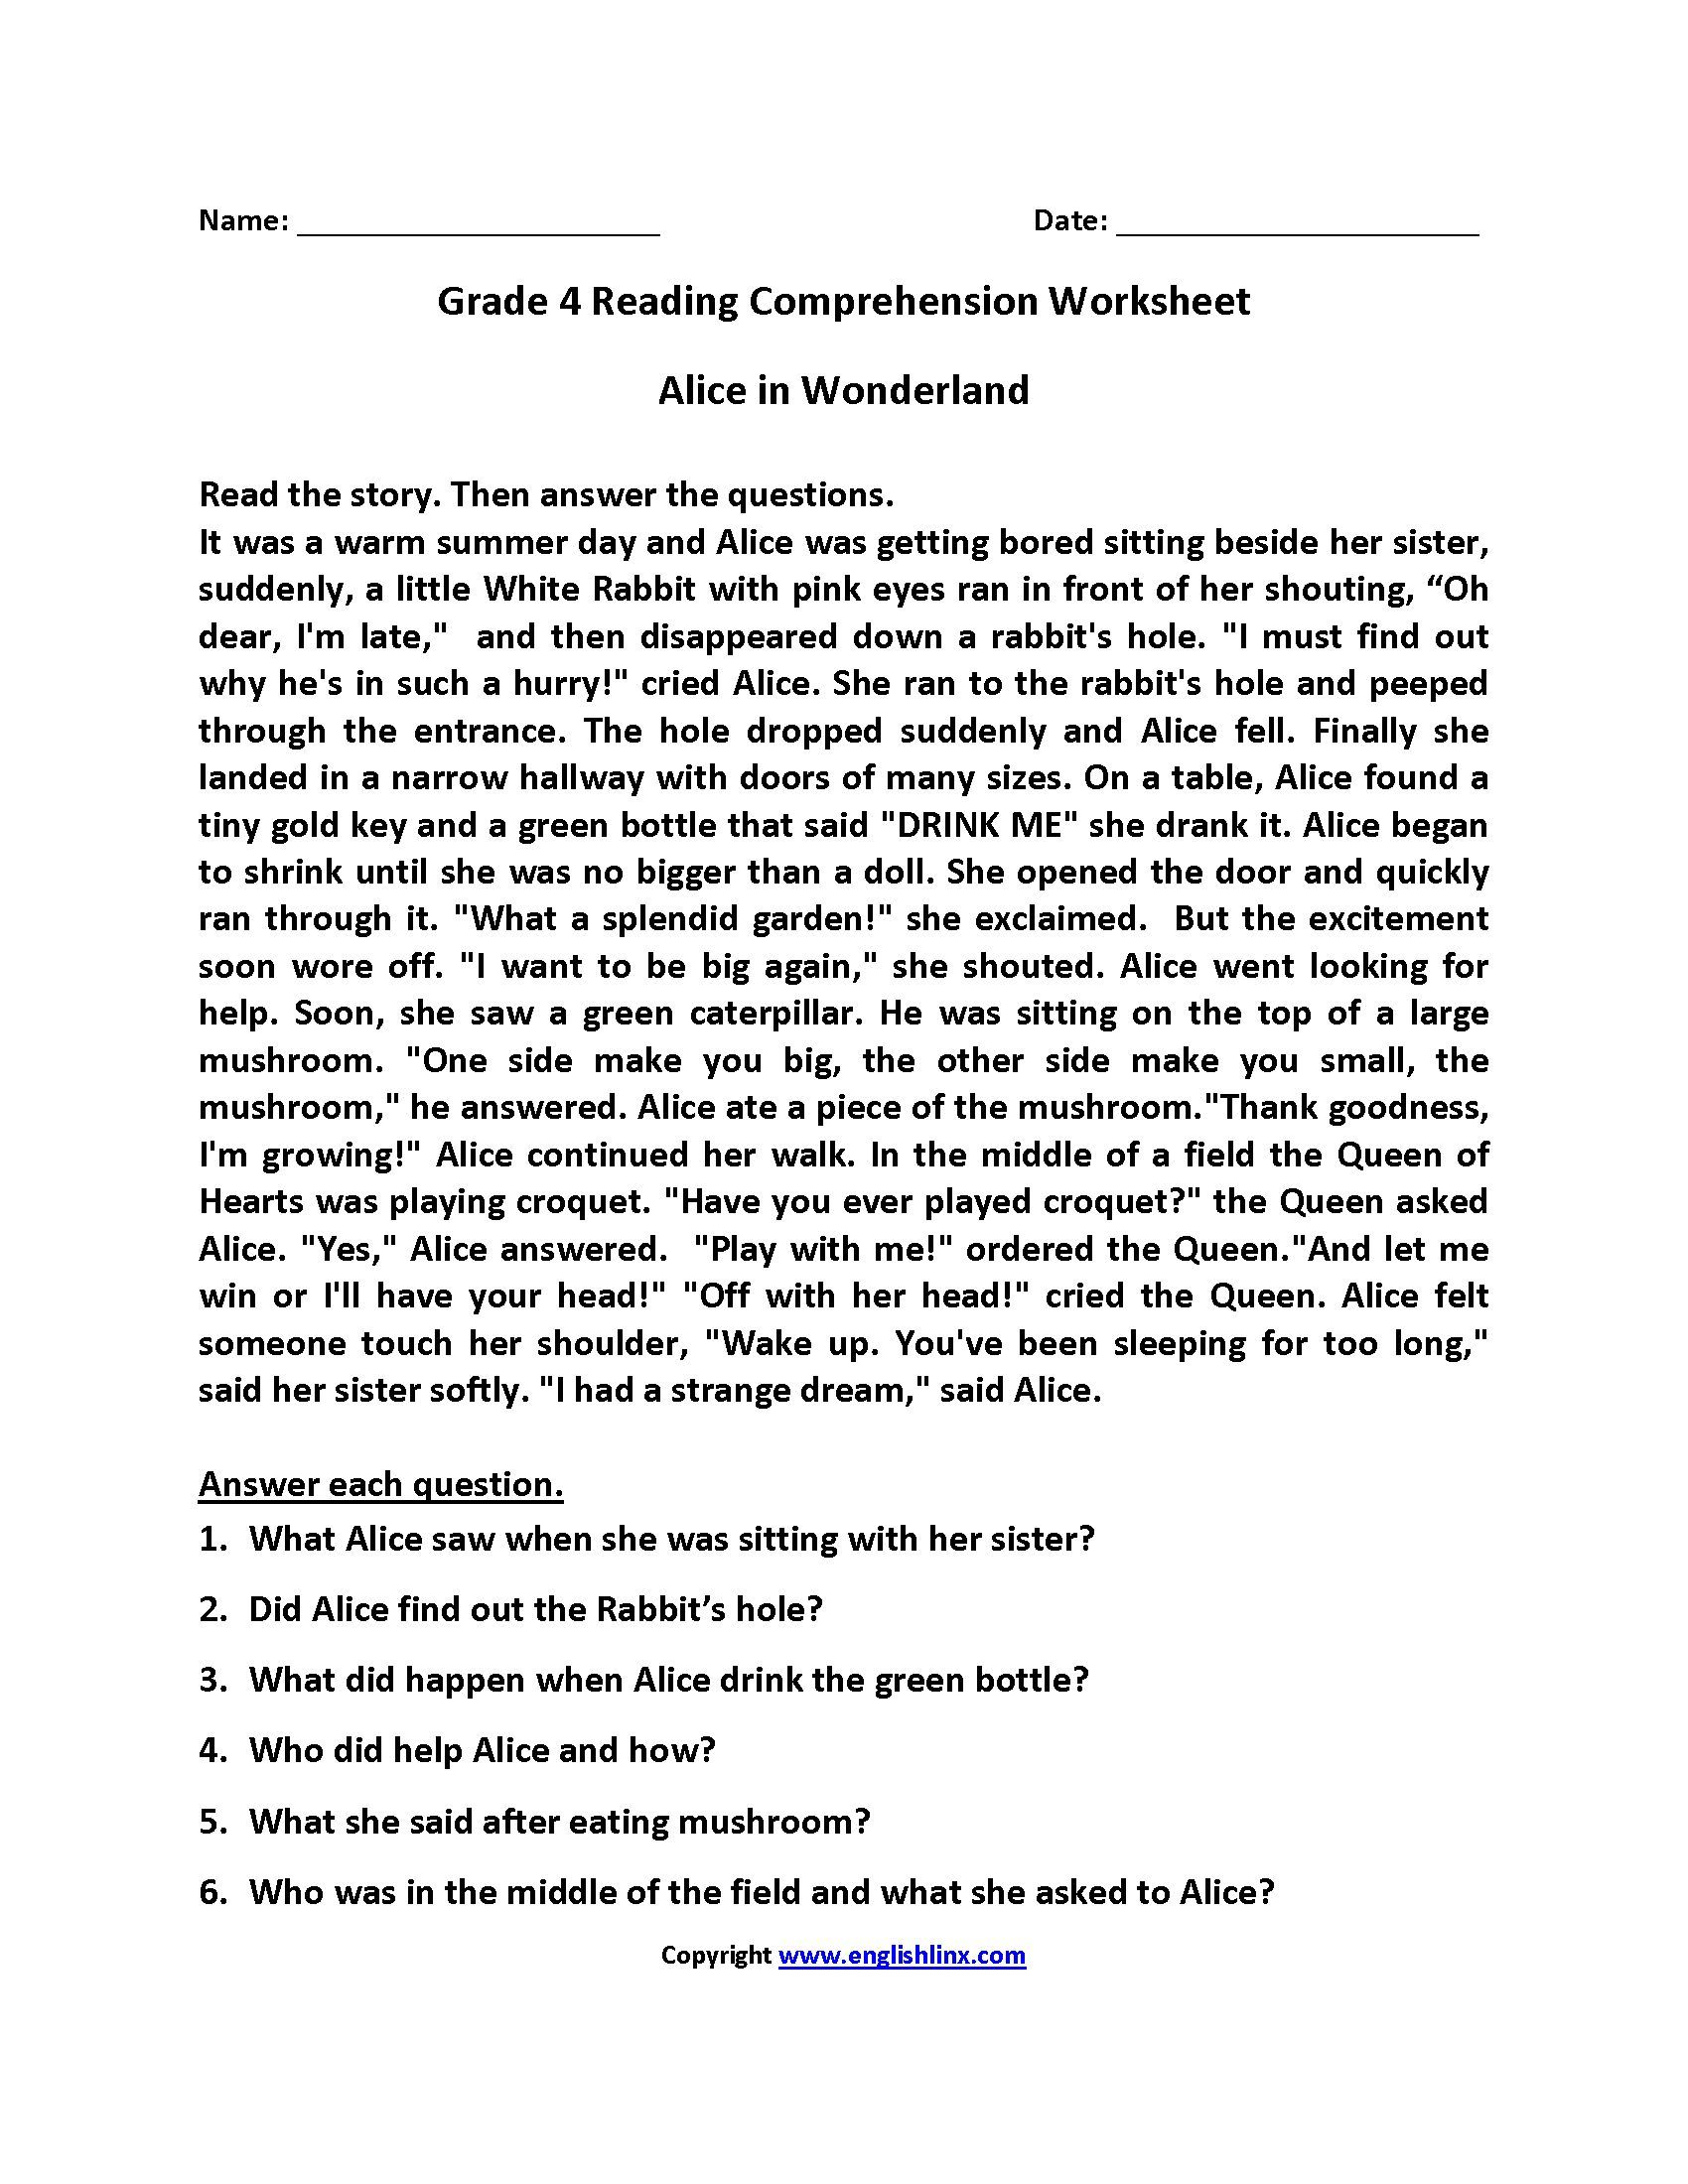 The 4th Grade Reading Comprehension Worksheets